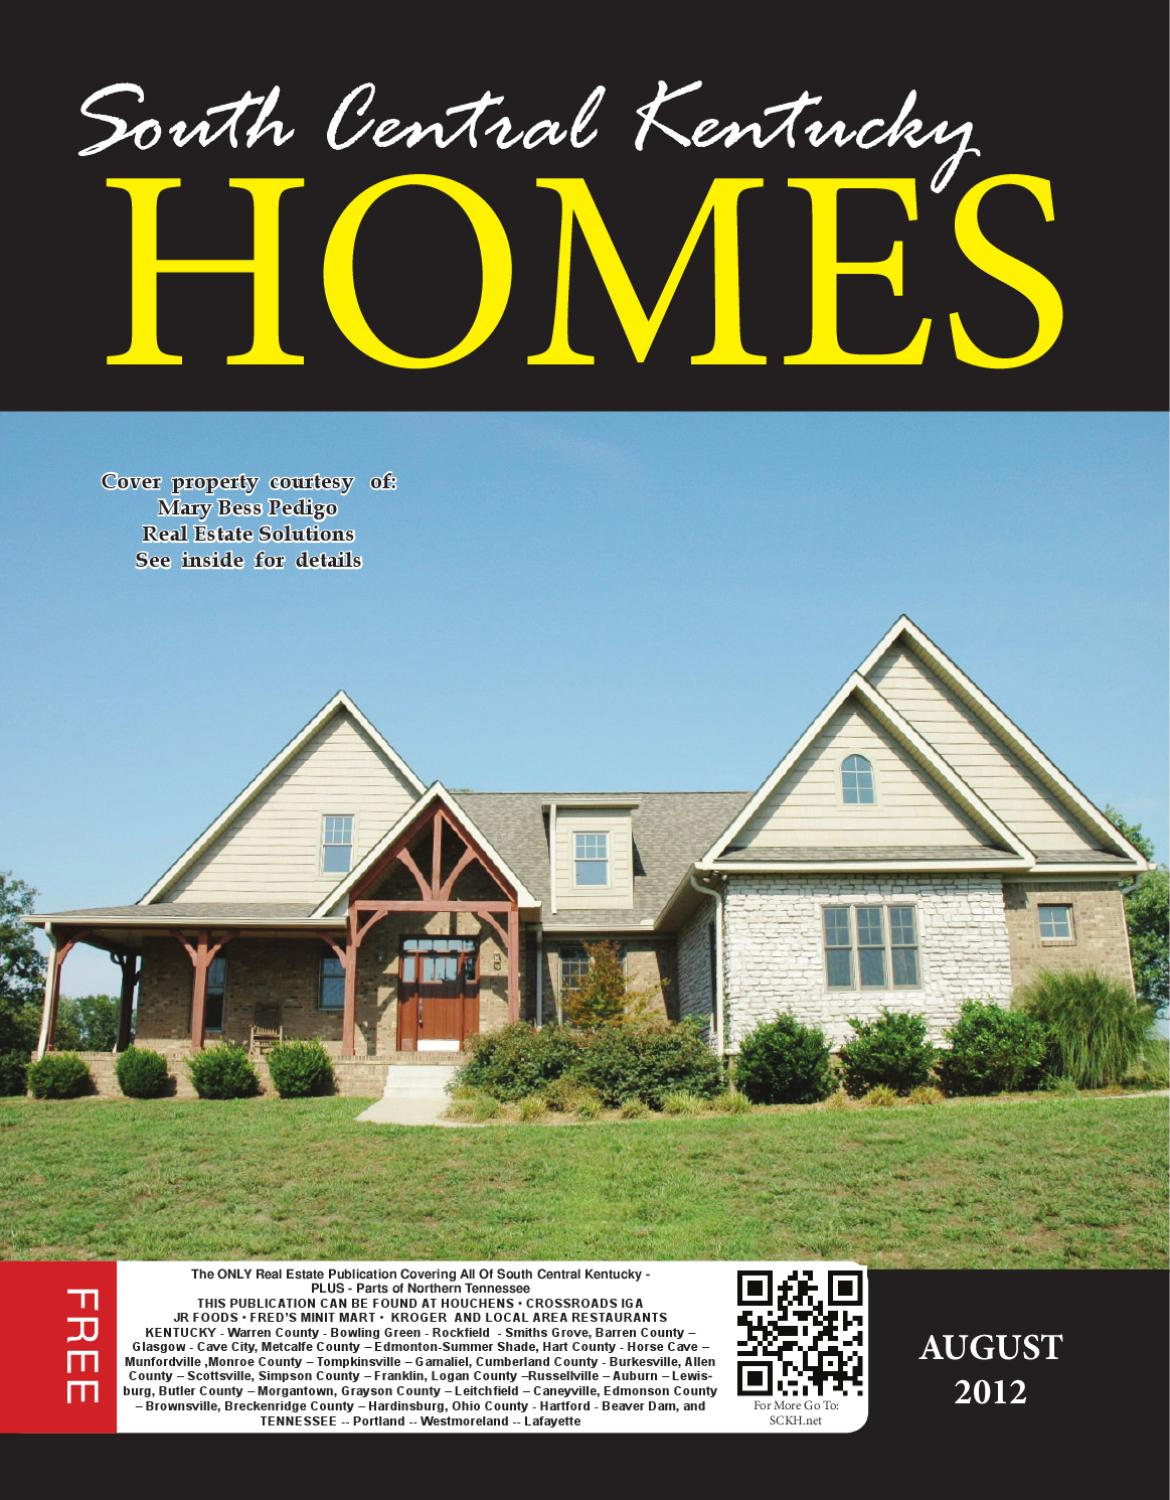 South Central KY HOMES by Home Market Magazine - issuu on